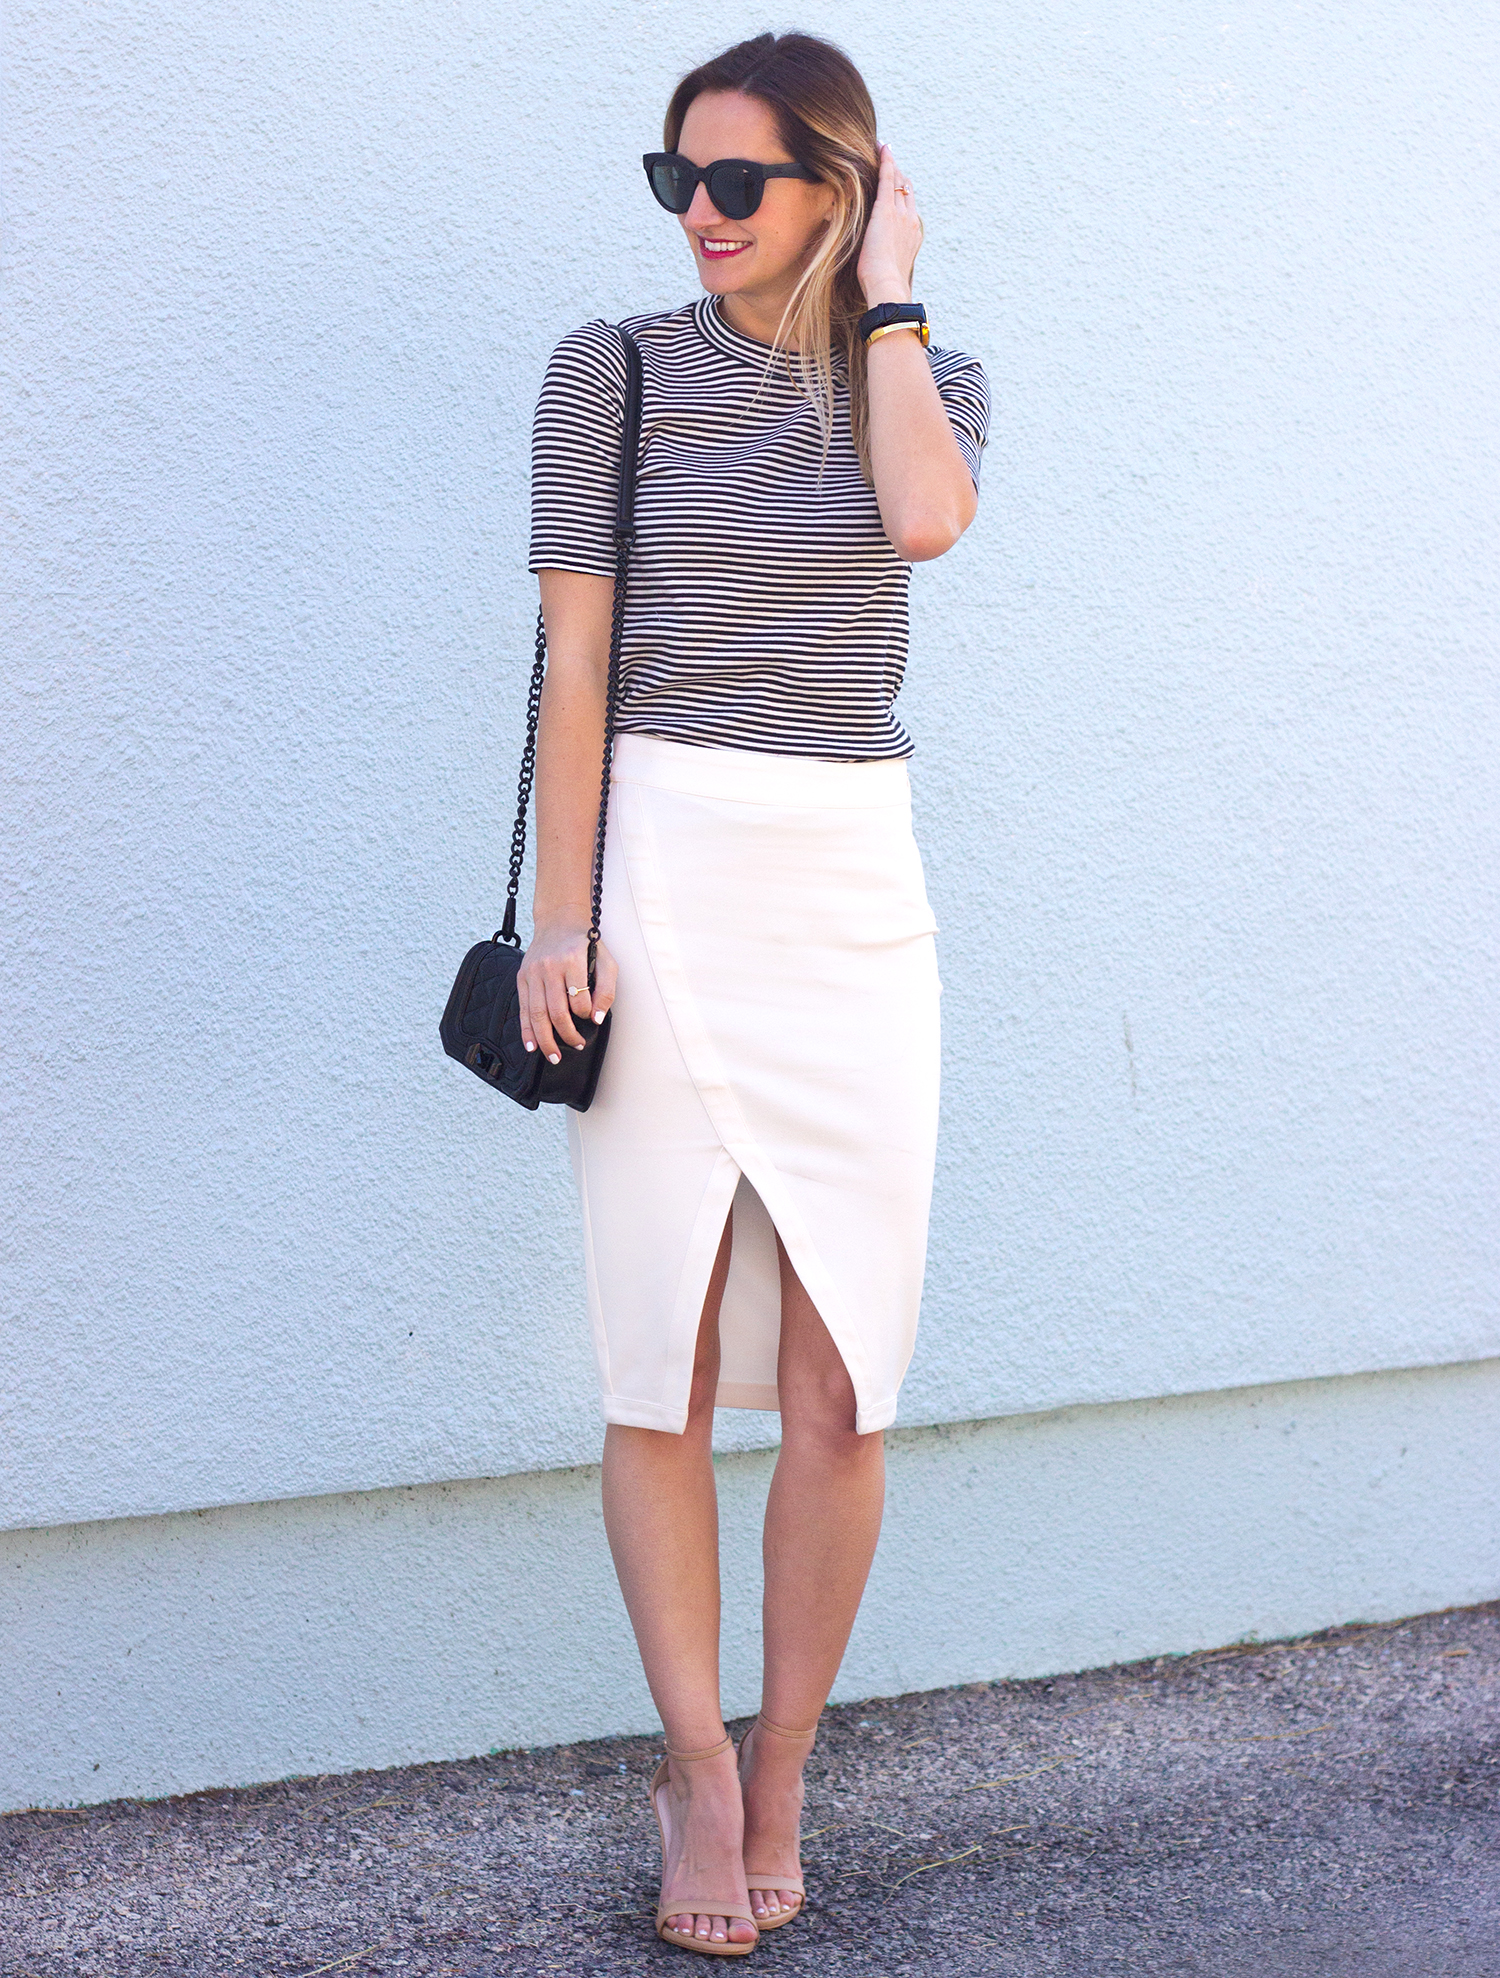 livvyland-blog-olivia-watson-austin-texas-fashion-blogger-steve-madden-stecy-nude-heels-cupcakes-and-cashmere-white-pencil-skirt-madewell-striped-tee-shirt-6